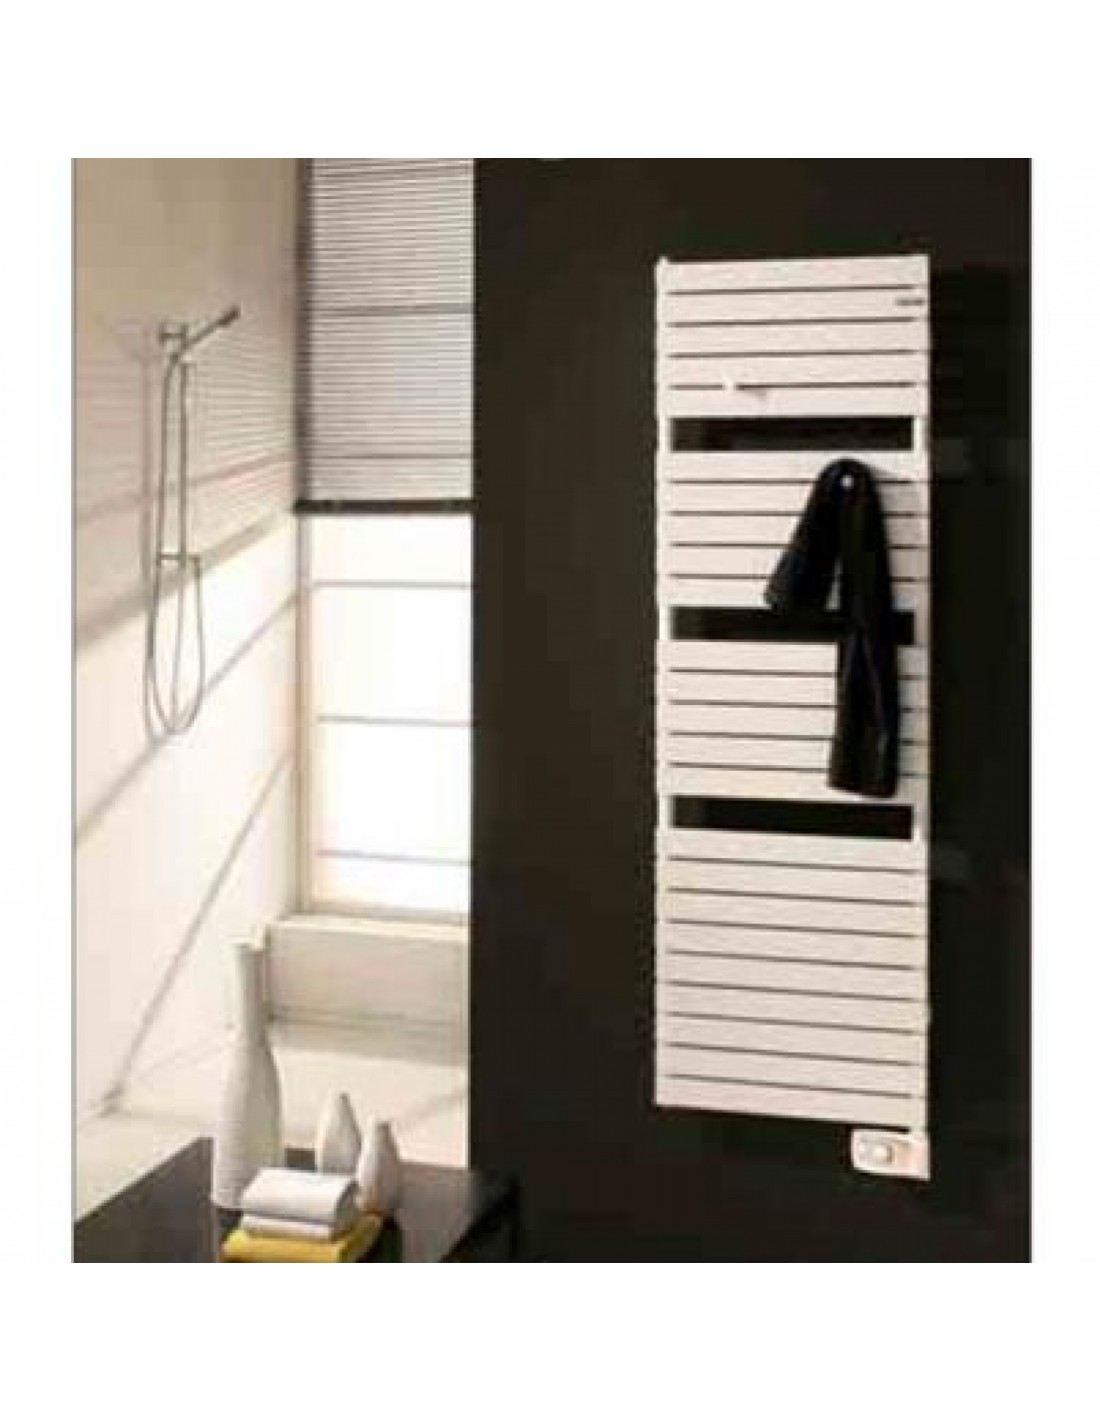 seche serviette electrique 500w salle de bain 2 on pinterest ikea bathtub shower and wet rooms. Black Bedroom Furniture Sets. Home Design Ideas